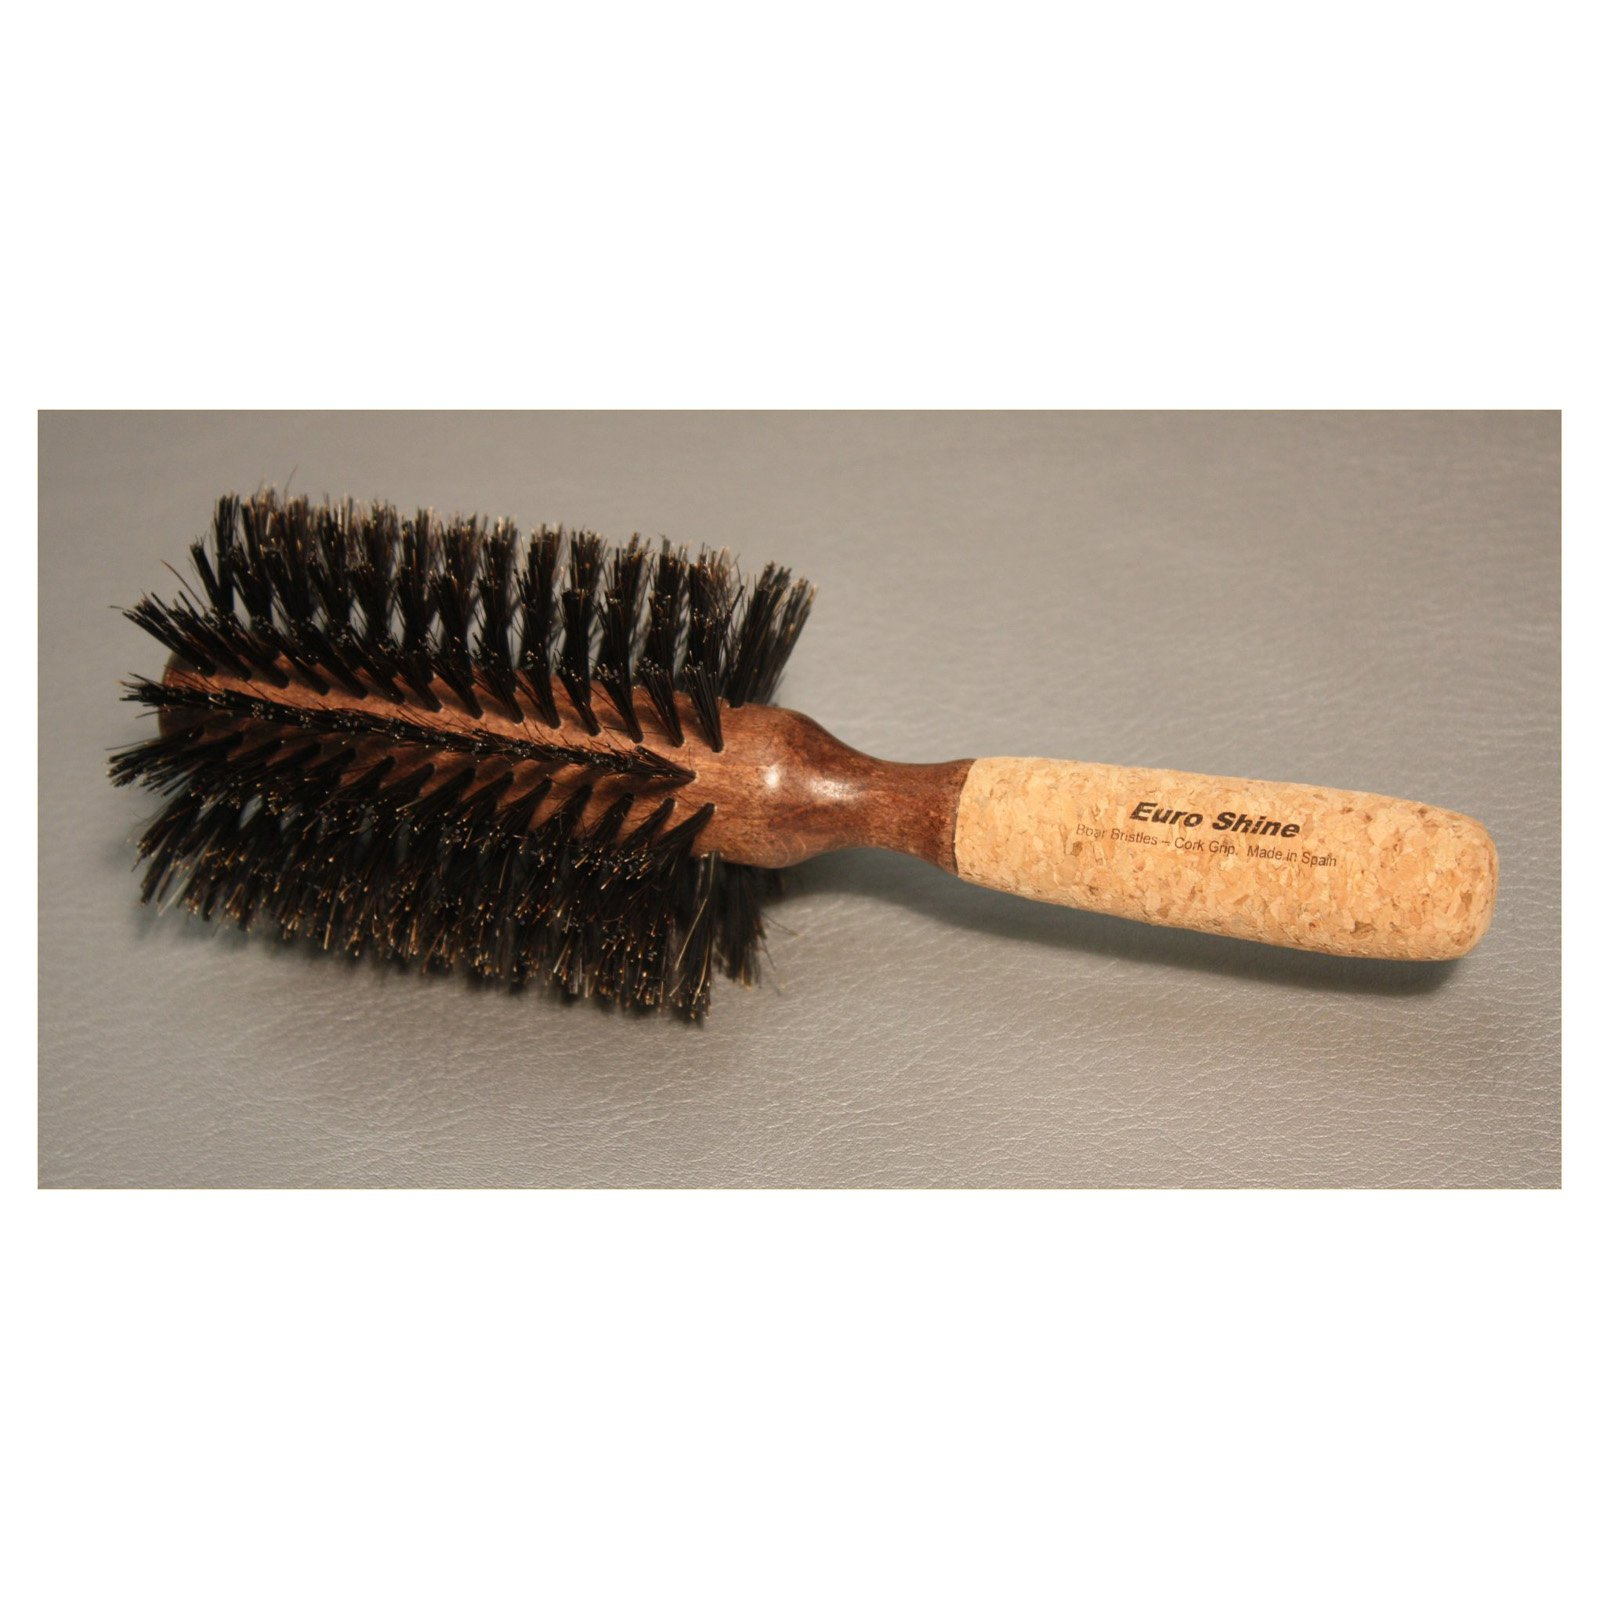 EuroShine 3.25 in. diam. Cork Grip Boar Bristle Brush